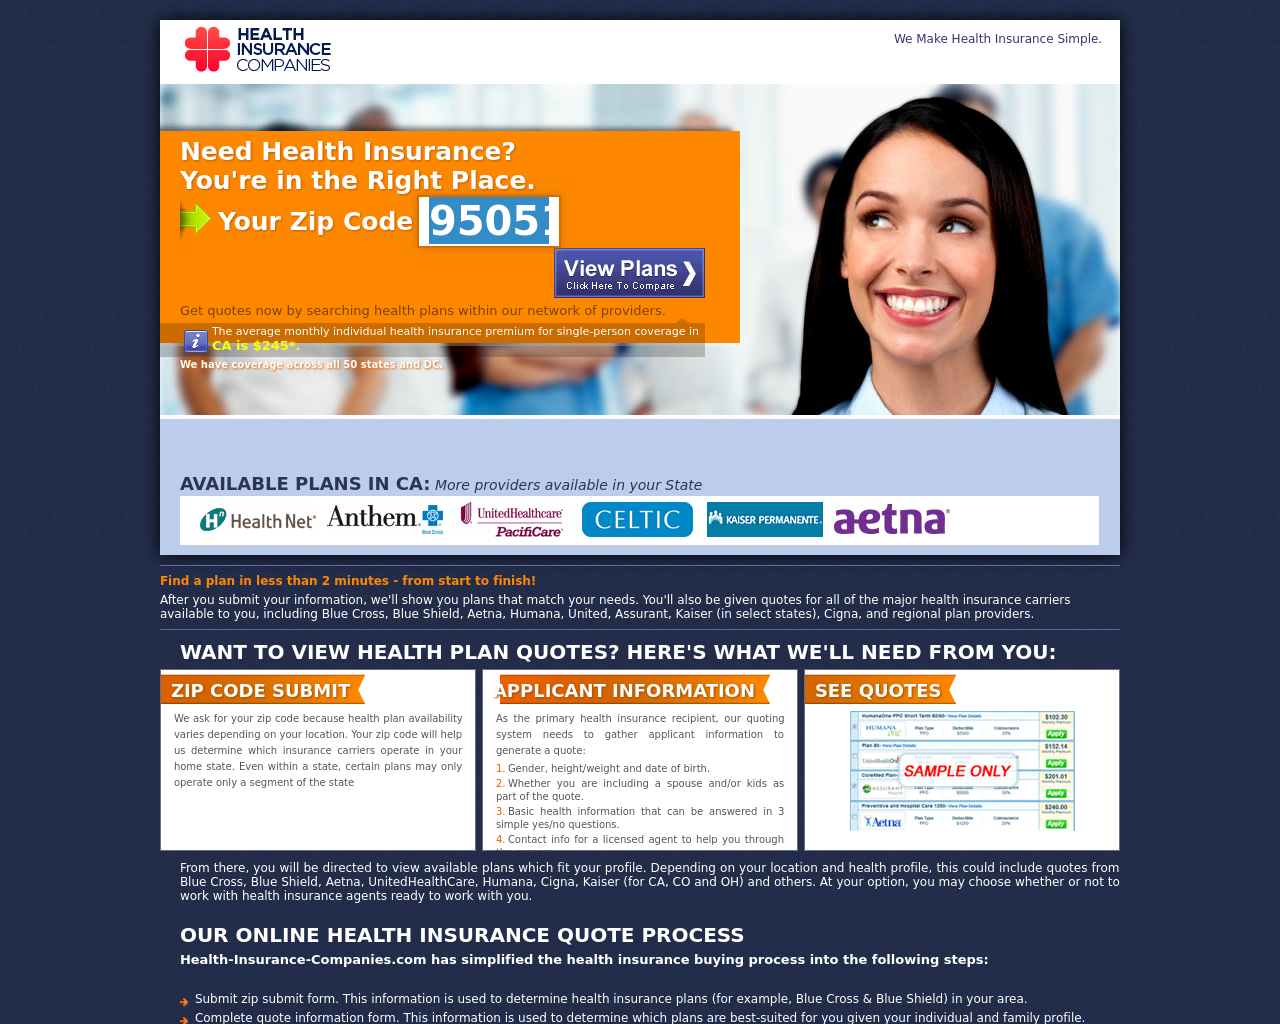 Health-Insurance-Companies-Advertising-Reviews-Pricing